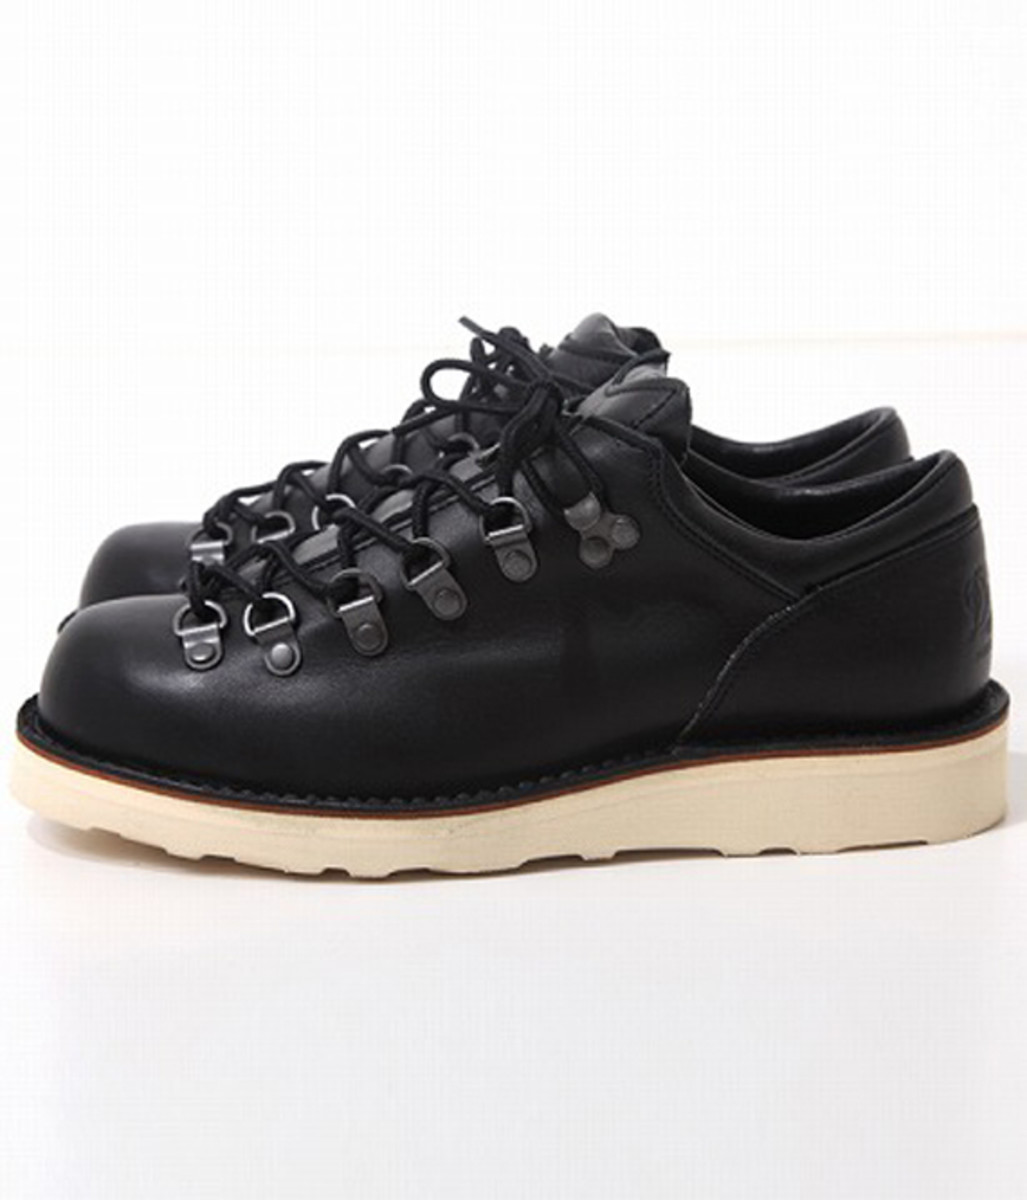 Mt. Ridge Low Black 5